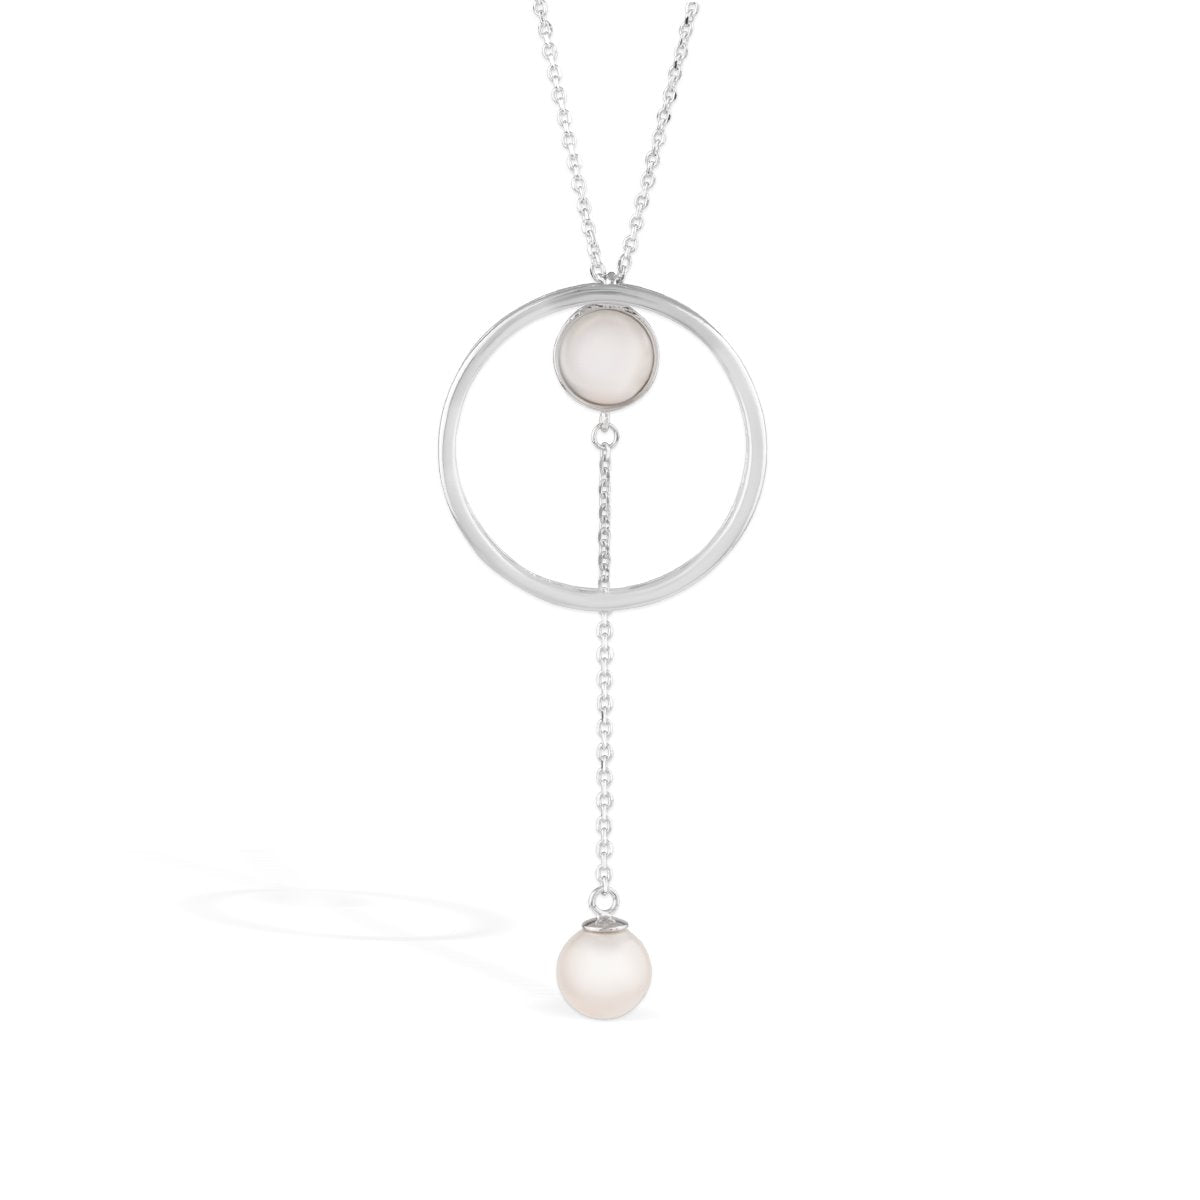 Peregrino Pearl Necklace